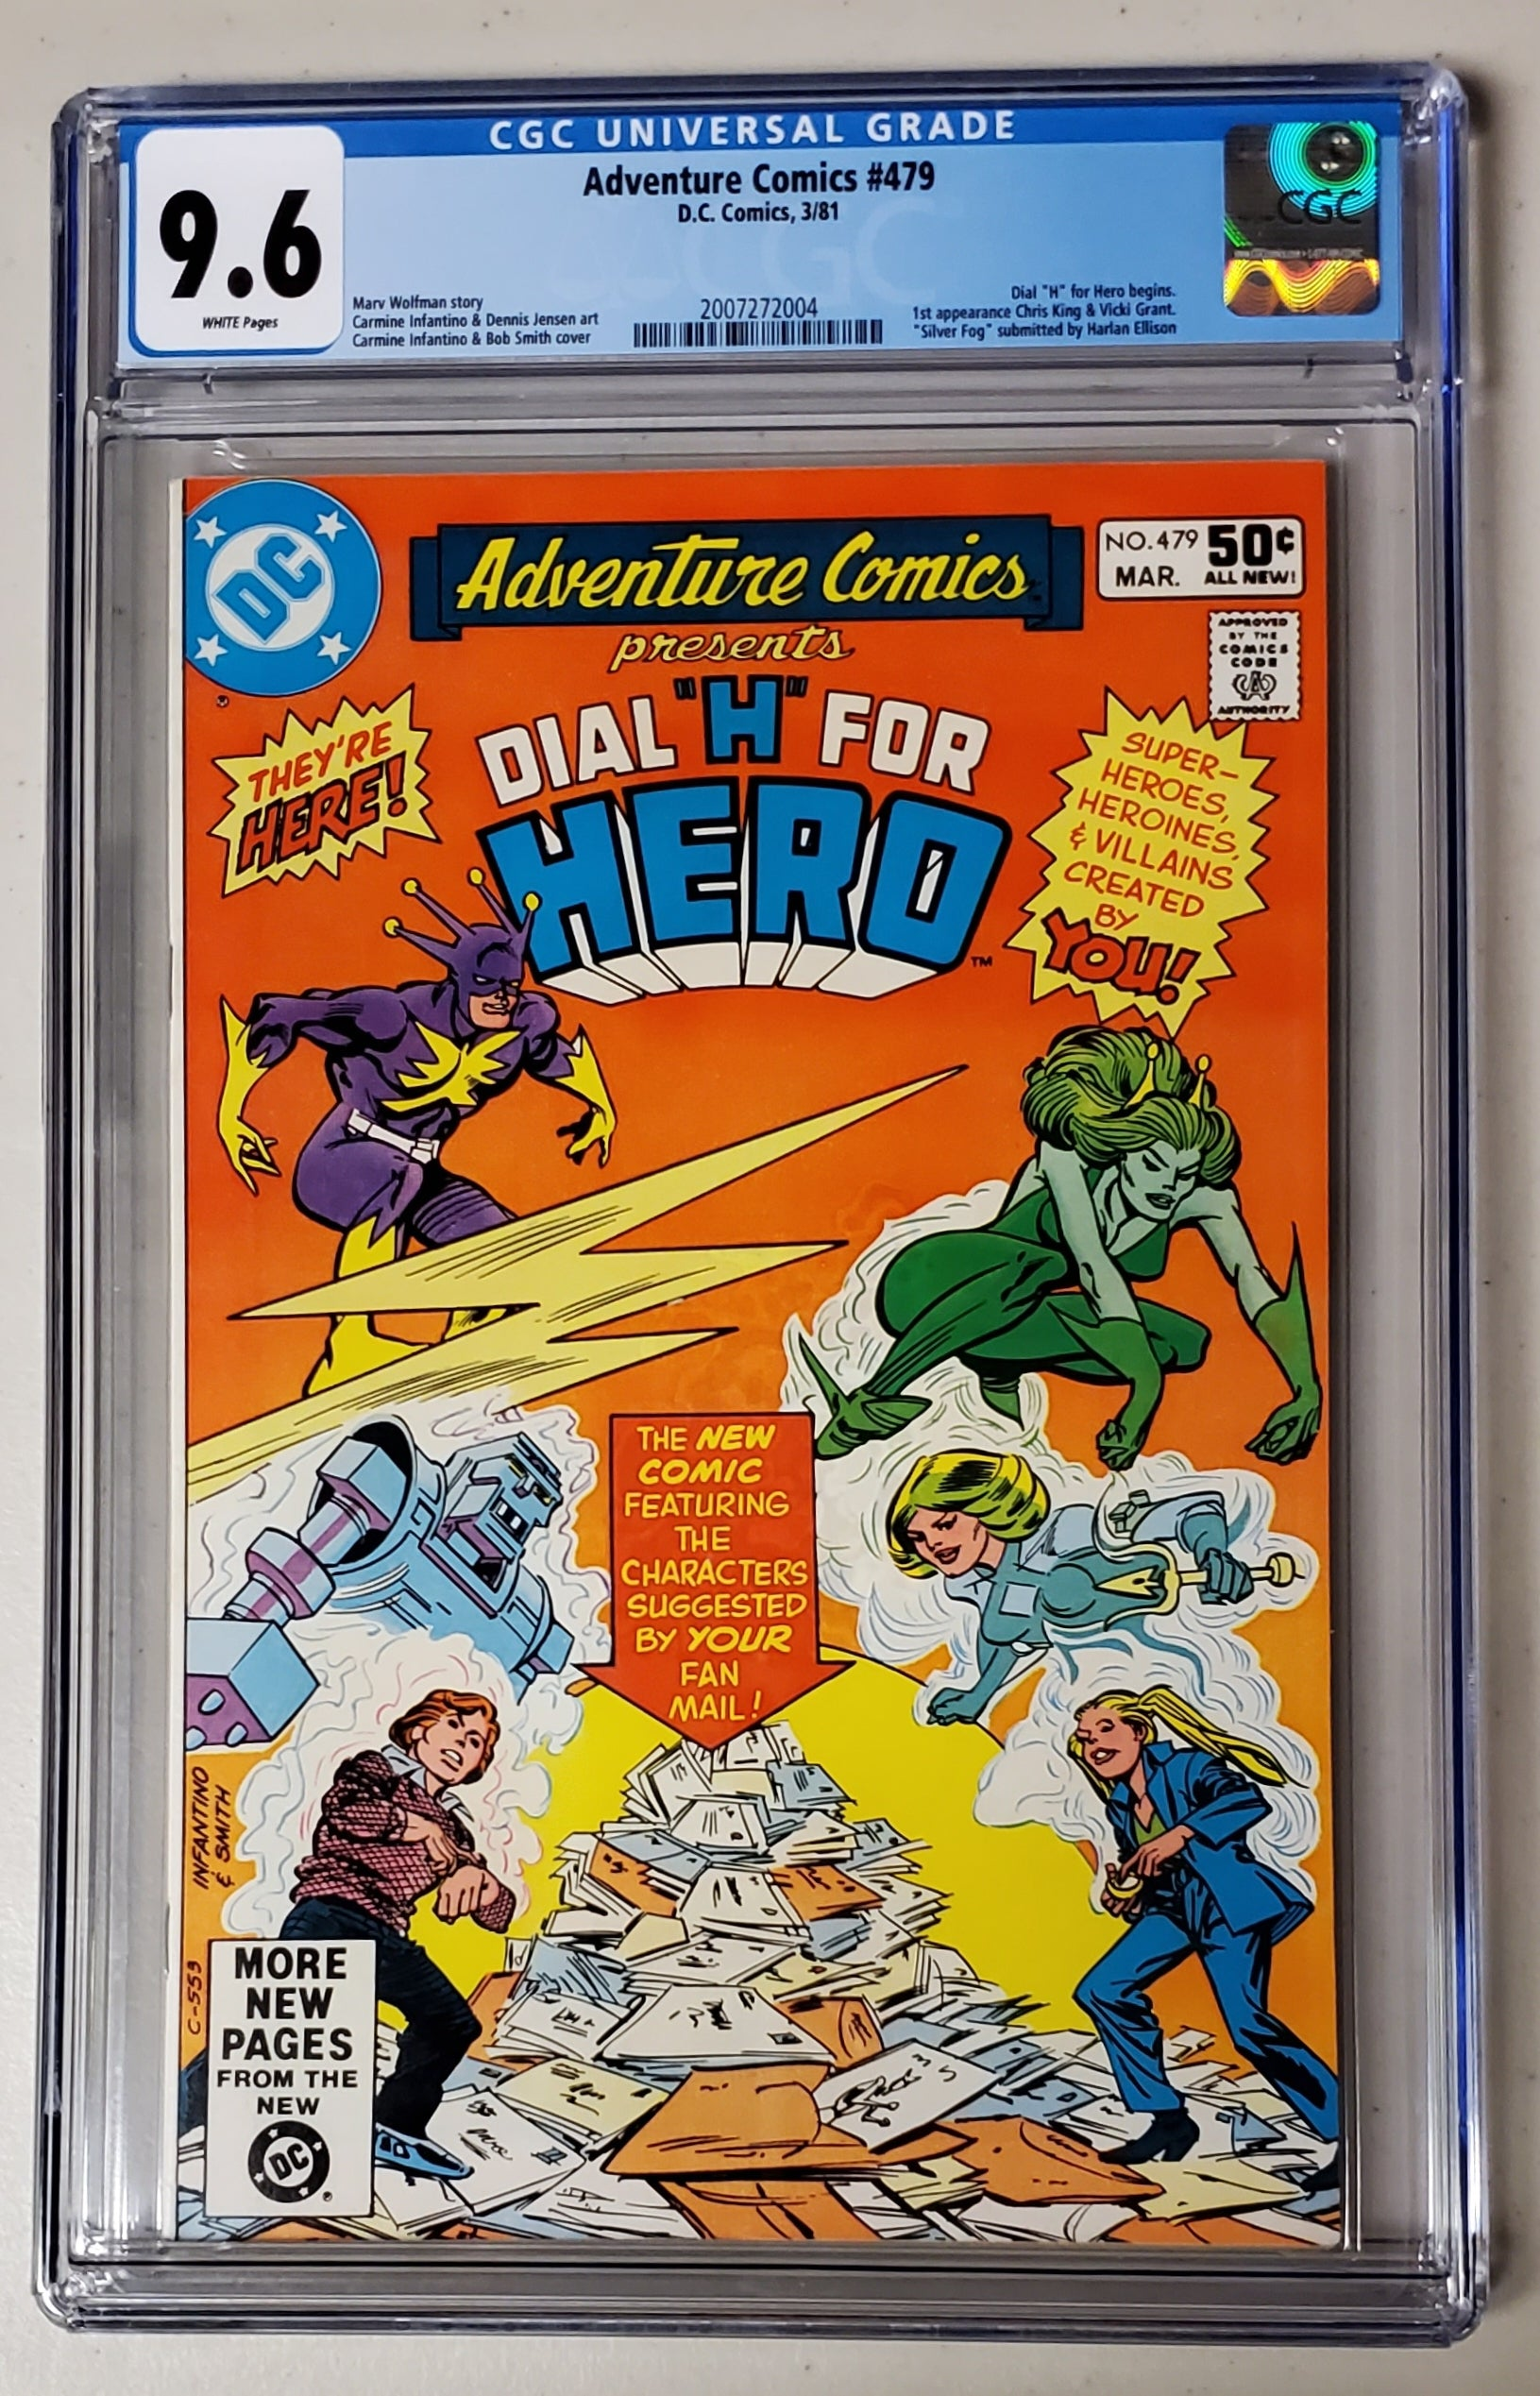 9.6 CGC Adventure Comics #479 (Dial H for Hero Begins) 1981